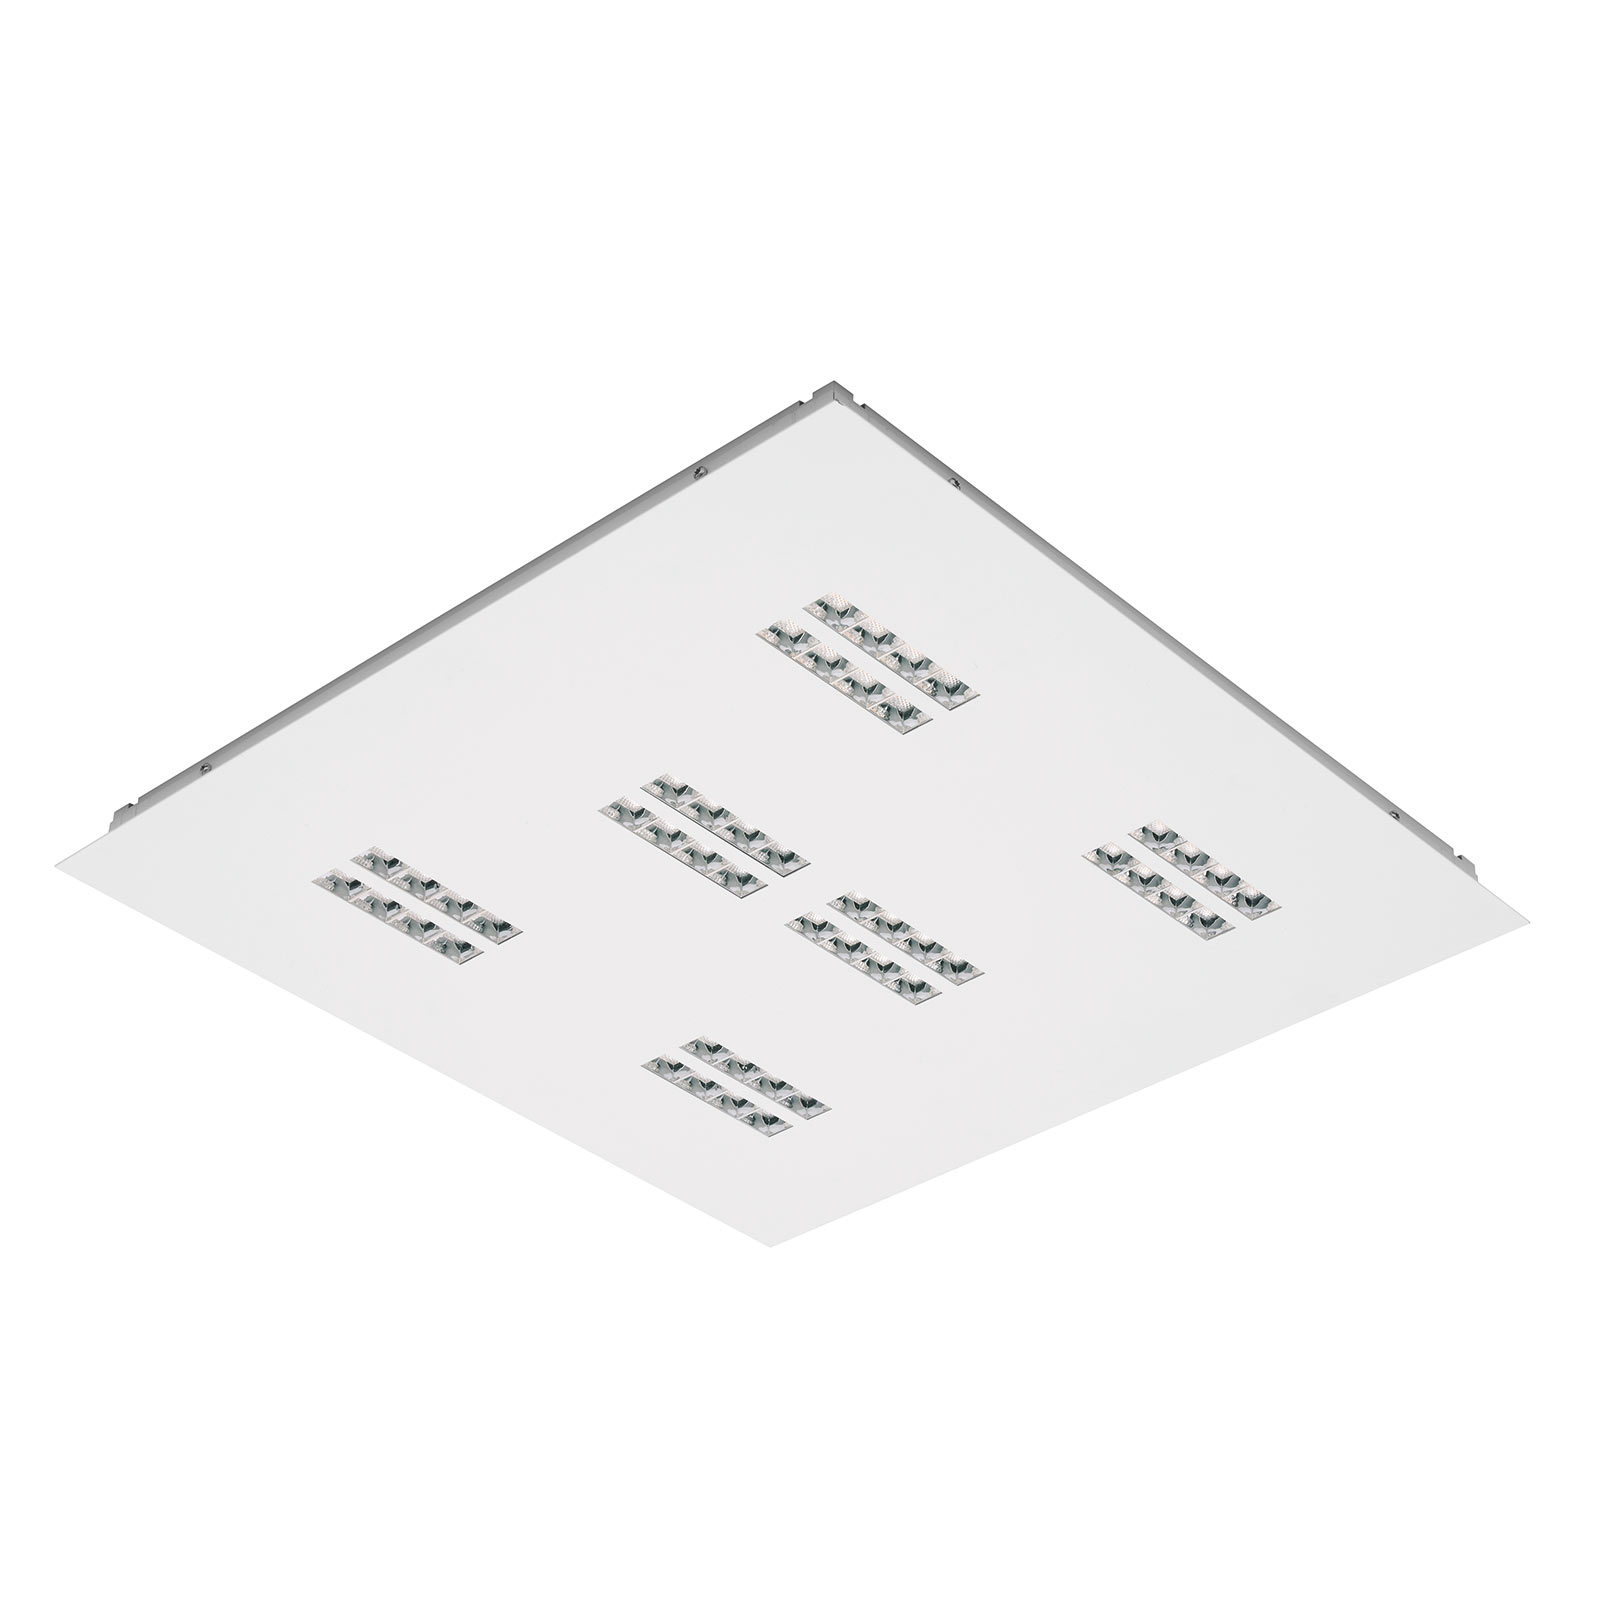 Declan Recessed PB1 LED panel 33 W switchable_7252236_1